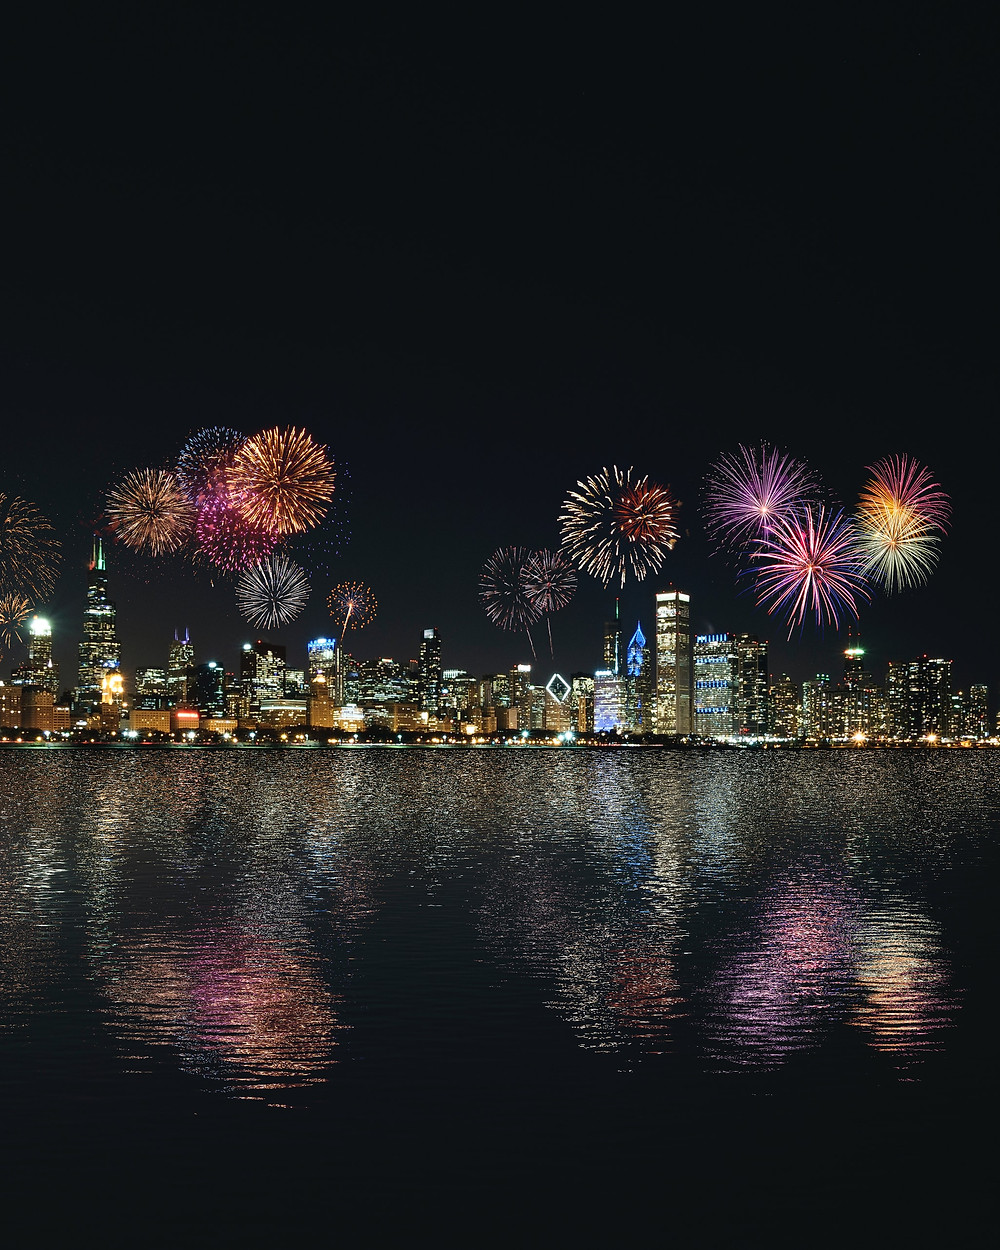 New Year's Fireworks 2021. Image from Unsplash.